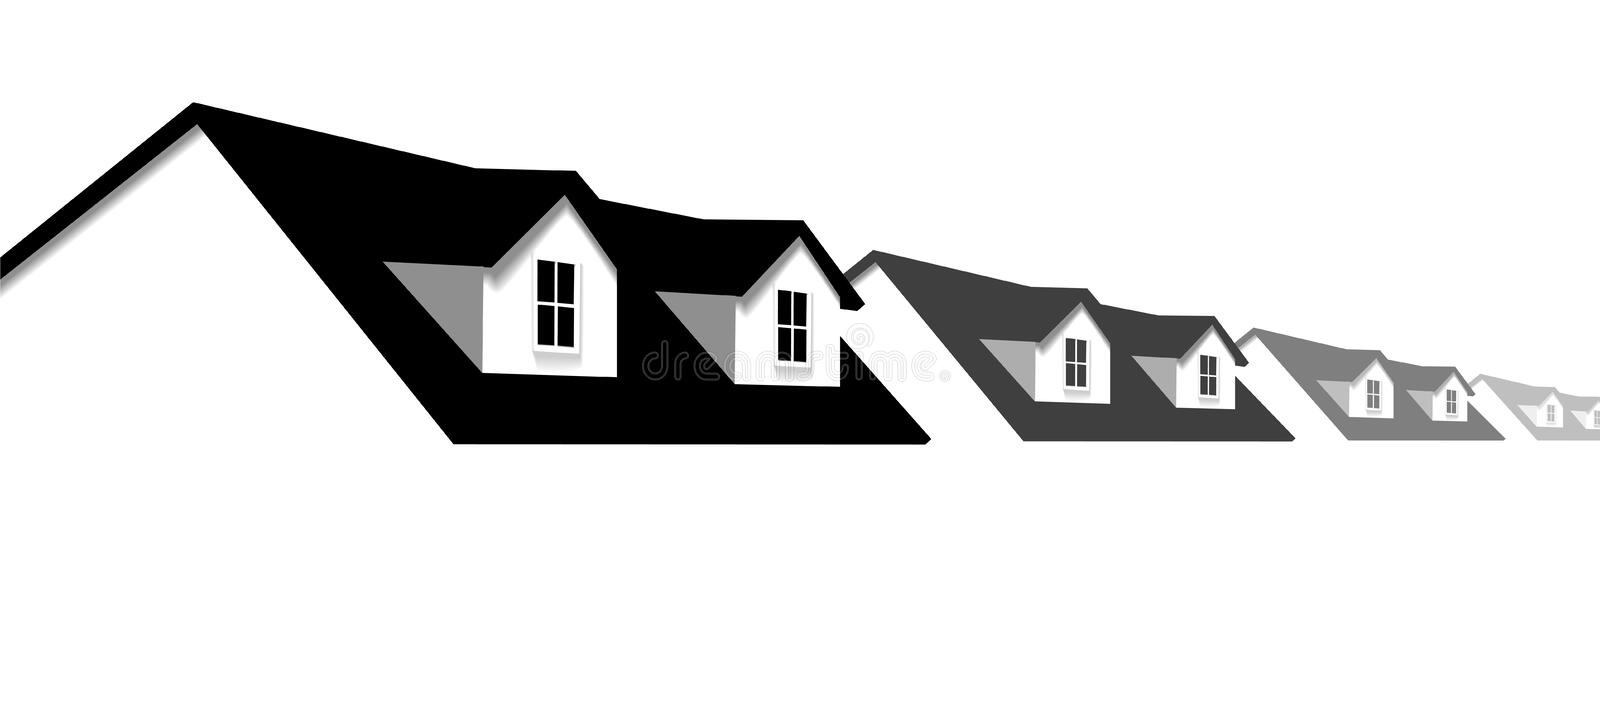 Download Home Row Houses Border With Dormer Roof Windows Stock Vector - Image: 10912984